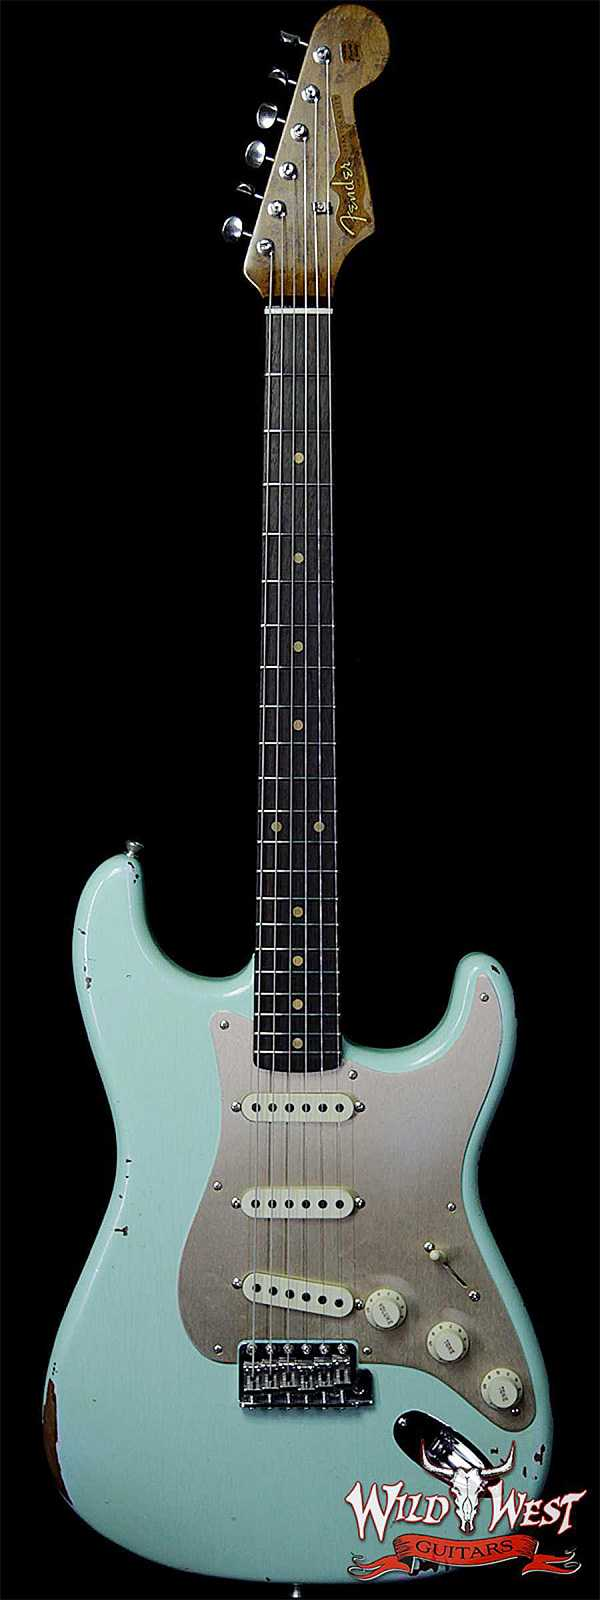 Fender Custom Shop 1960 Roasted Stratocaster Relic Birdseye Maple Neck AAA Rosewood Surf Green